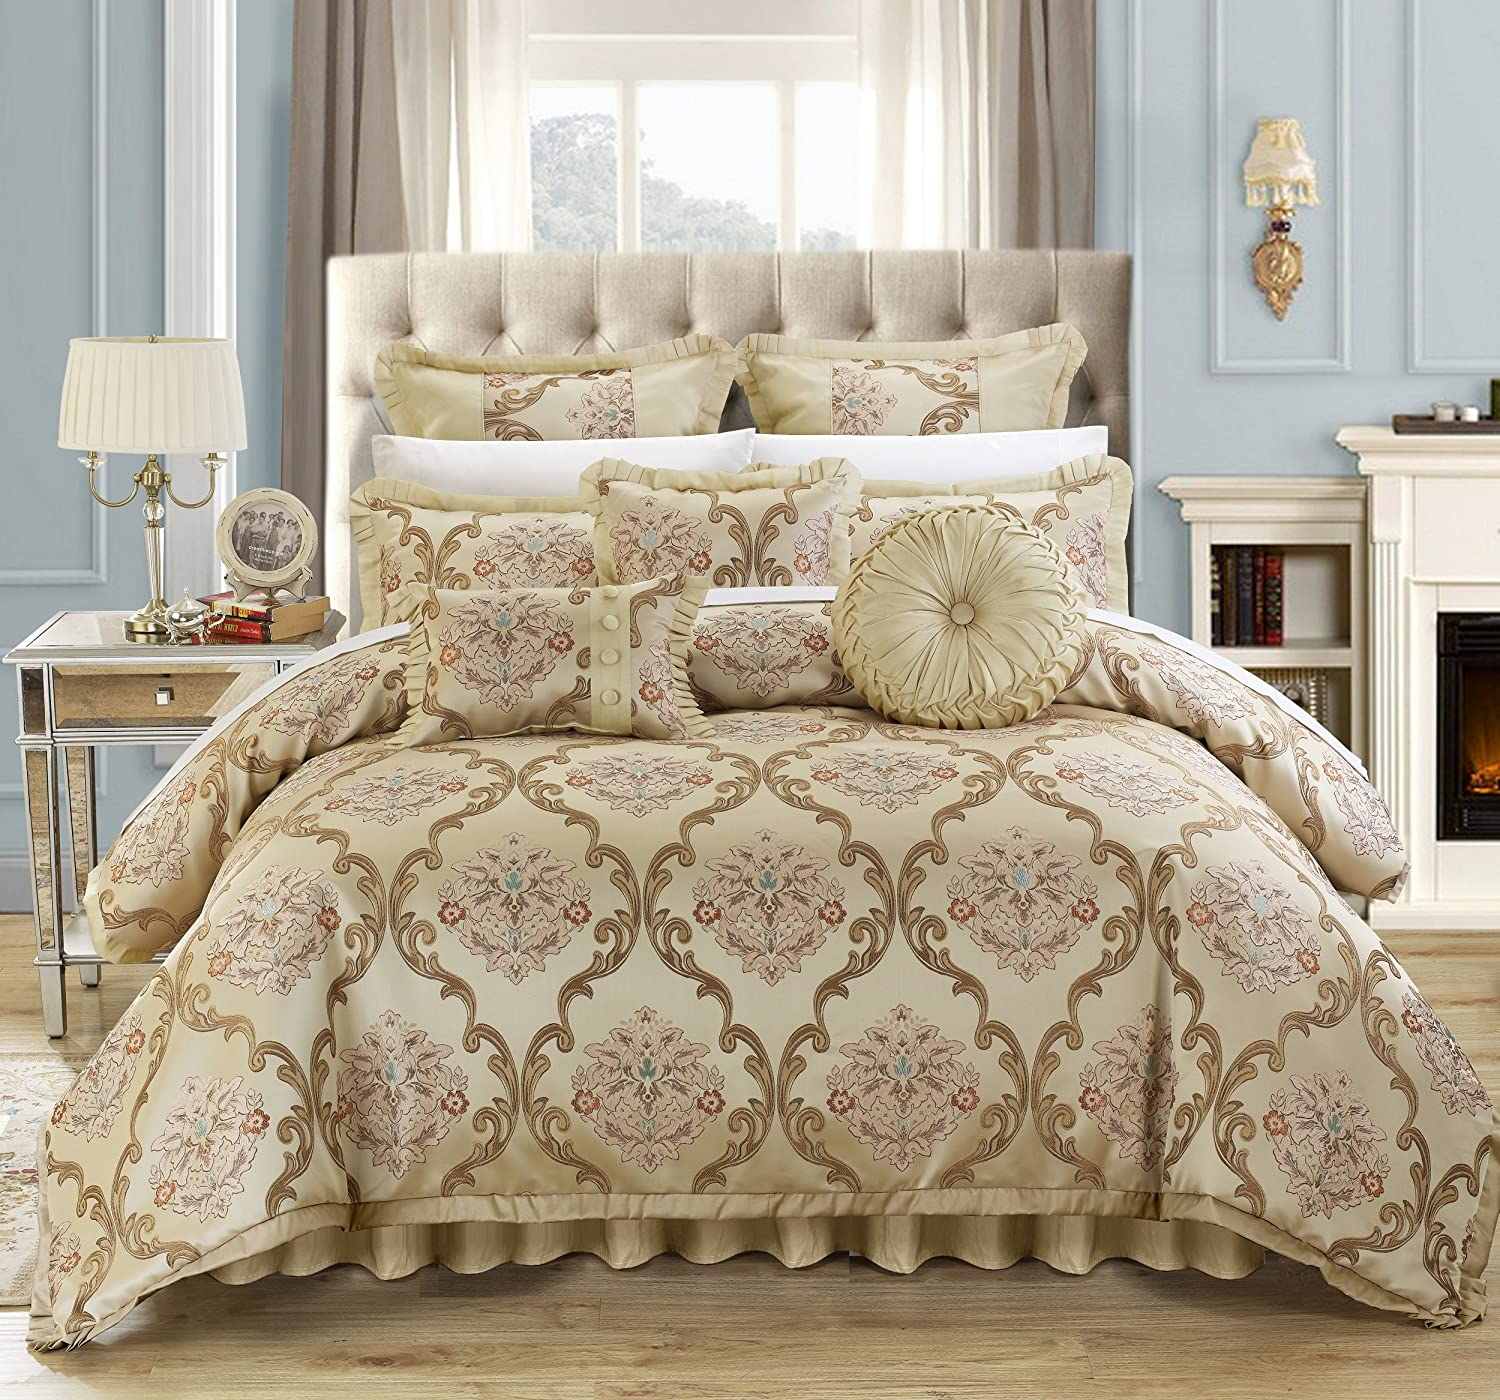 Chic Home 9 Piece Aubrey Decorator Upholstery Quality Jacquard Scroll Fabric Bedroom Comforter Set & Pillows Ensemble, Queen, Beige